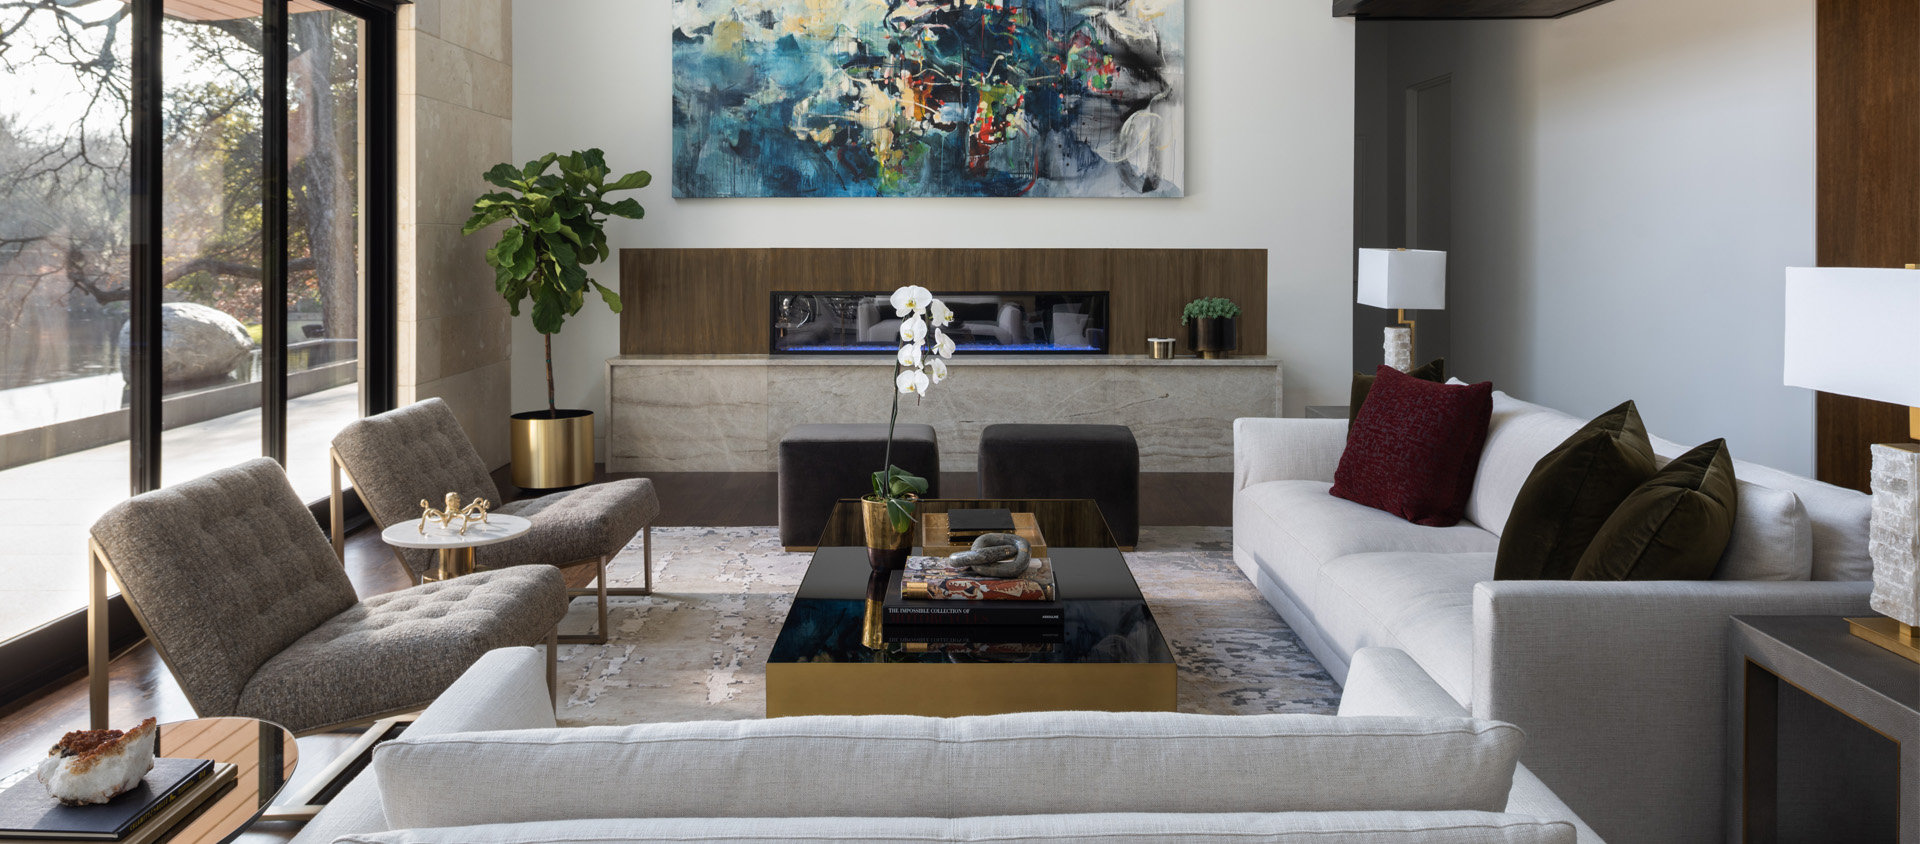 Take a Look at Dallas Best Interior Designers - Part II take a look at dallas best interior designers Take a Look at Dallas Best Interior Designers – Part II Lakehill top image1